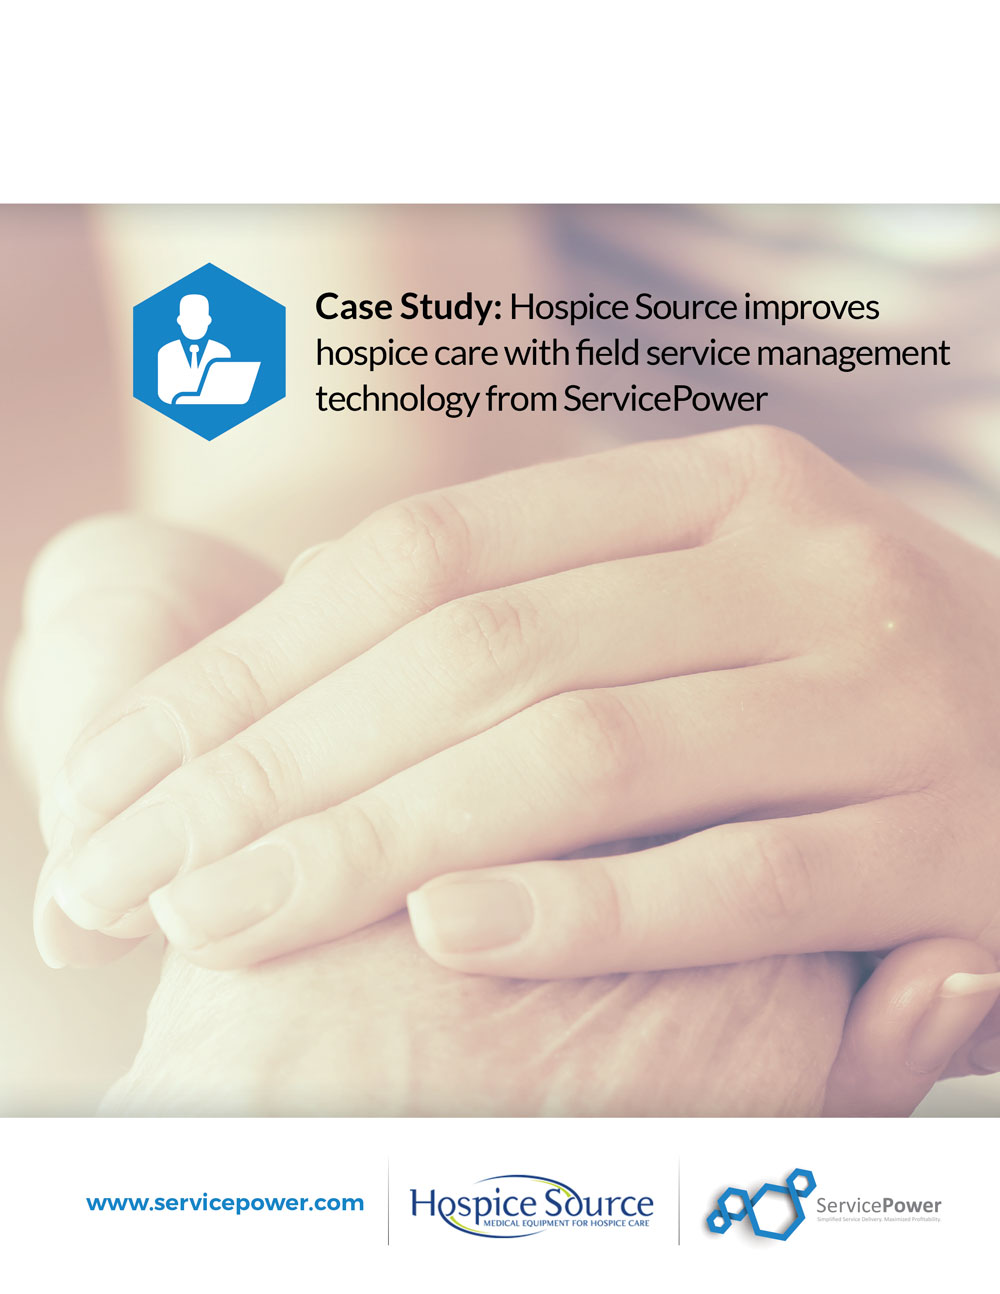 Case Study: Hospice Source improves  hospice care with field service management technology from ServicePower